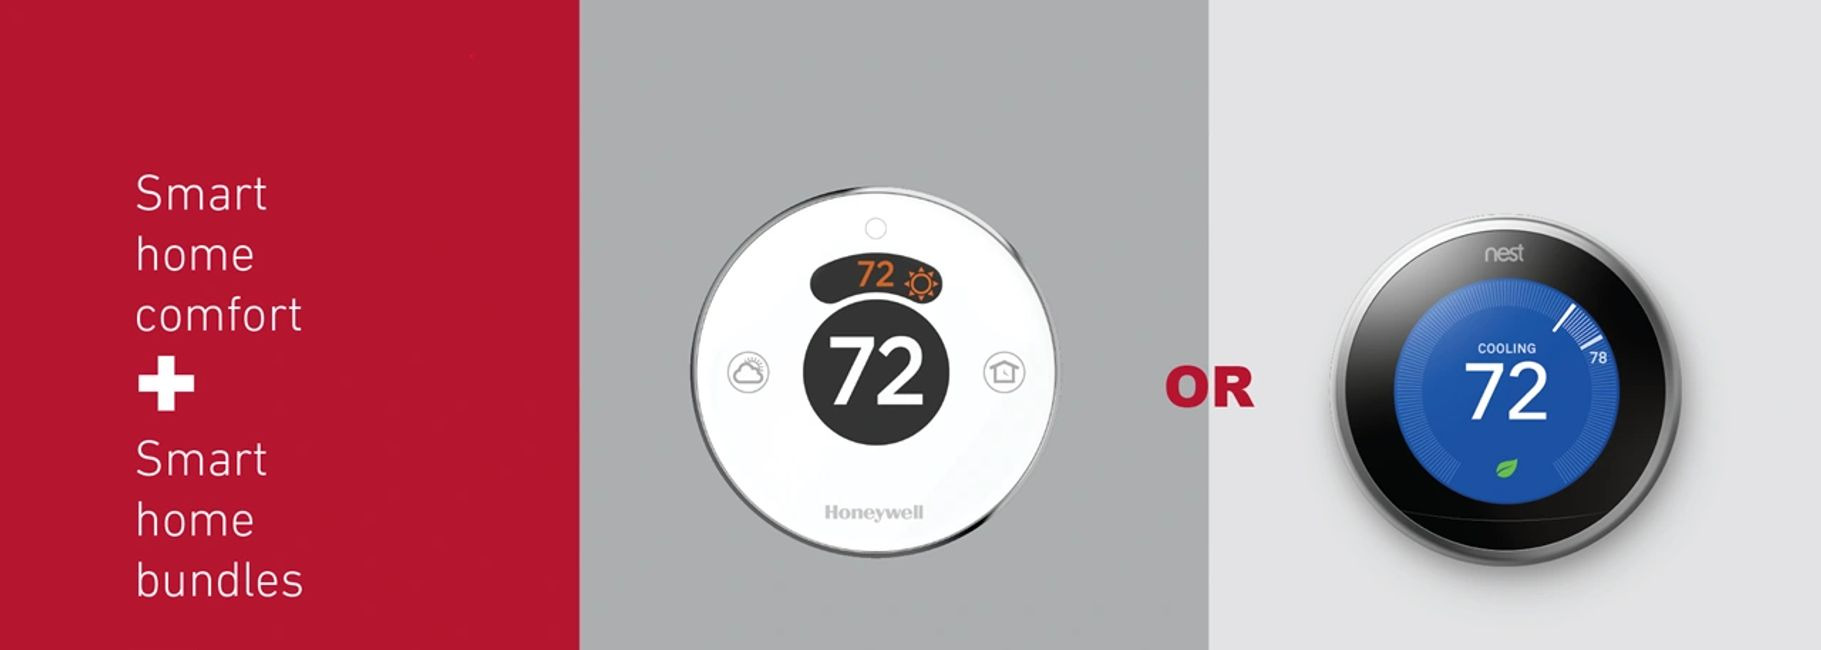 Nest Learning Thermostat WIFI